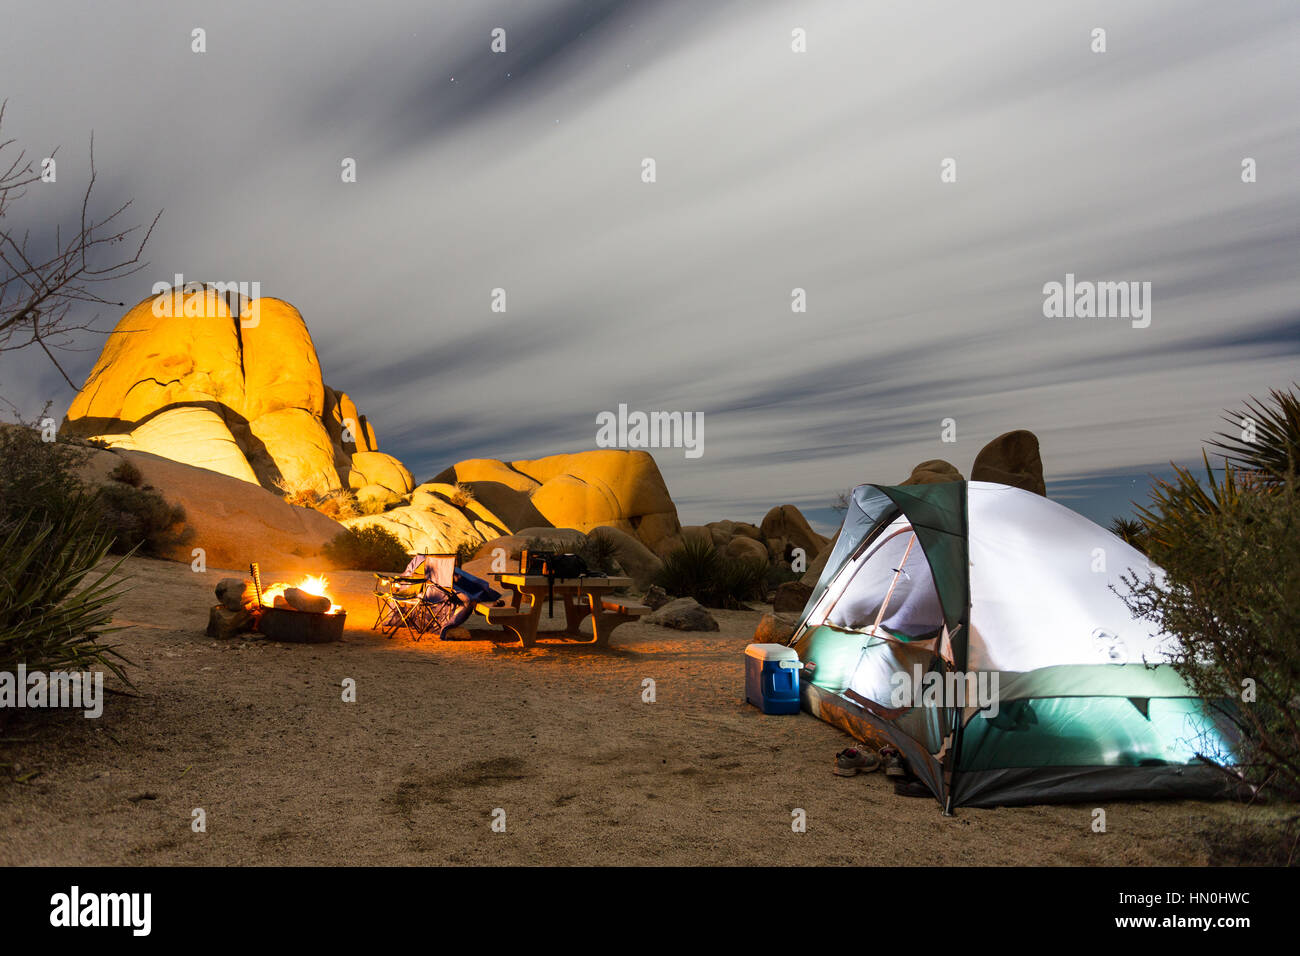 A tent sits next to a campfire at night in a Joshua Tree National Park campsite. - Stock Image